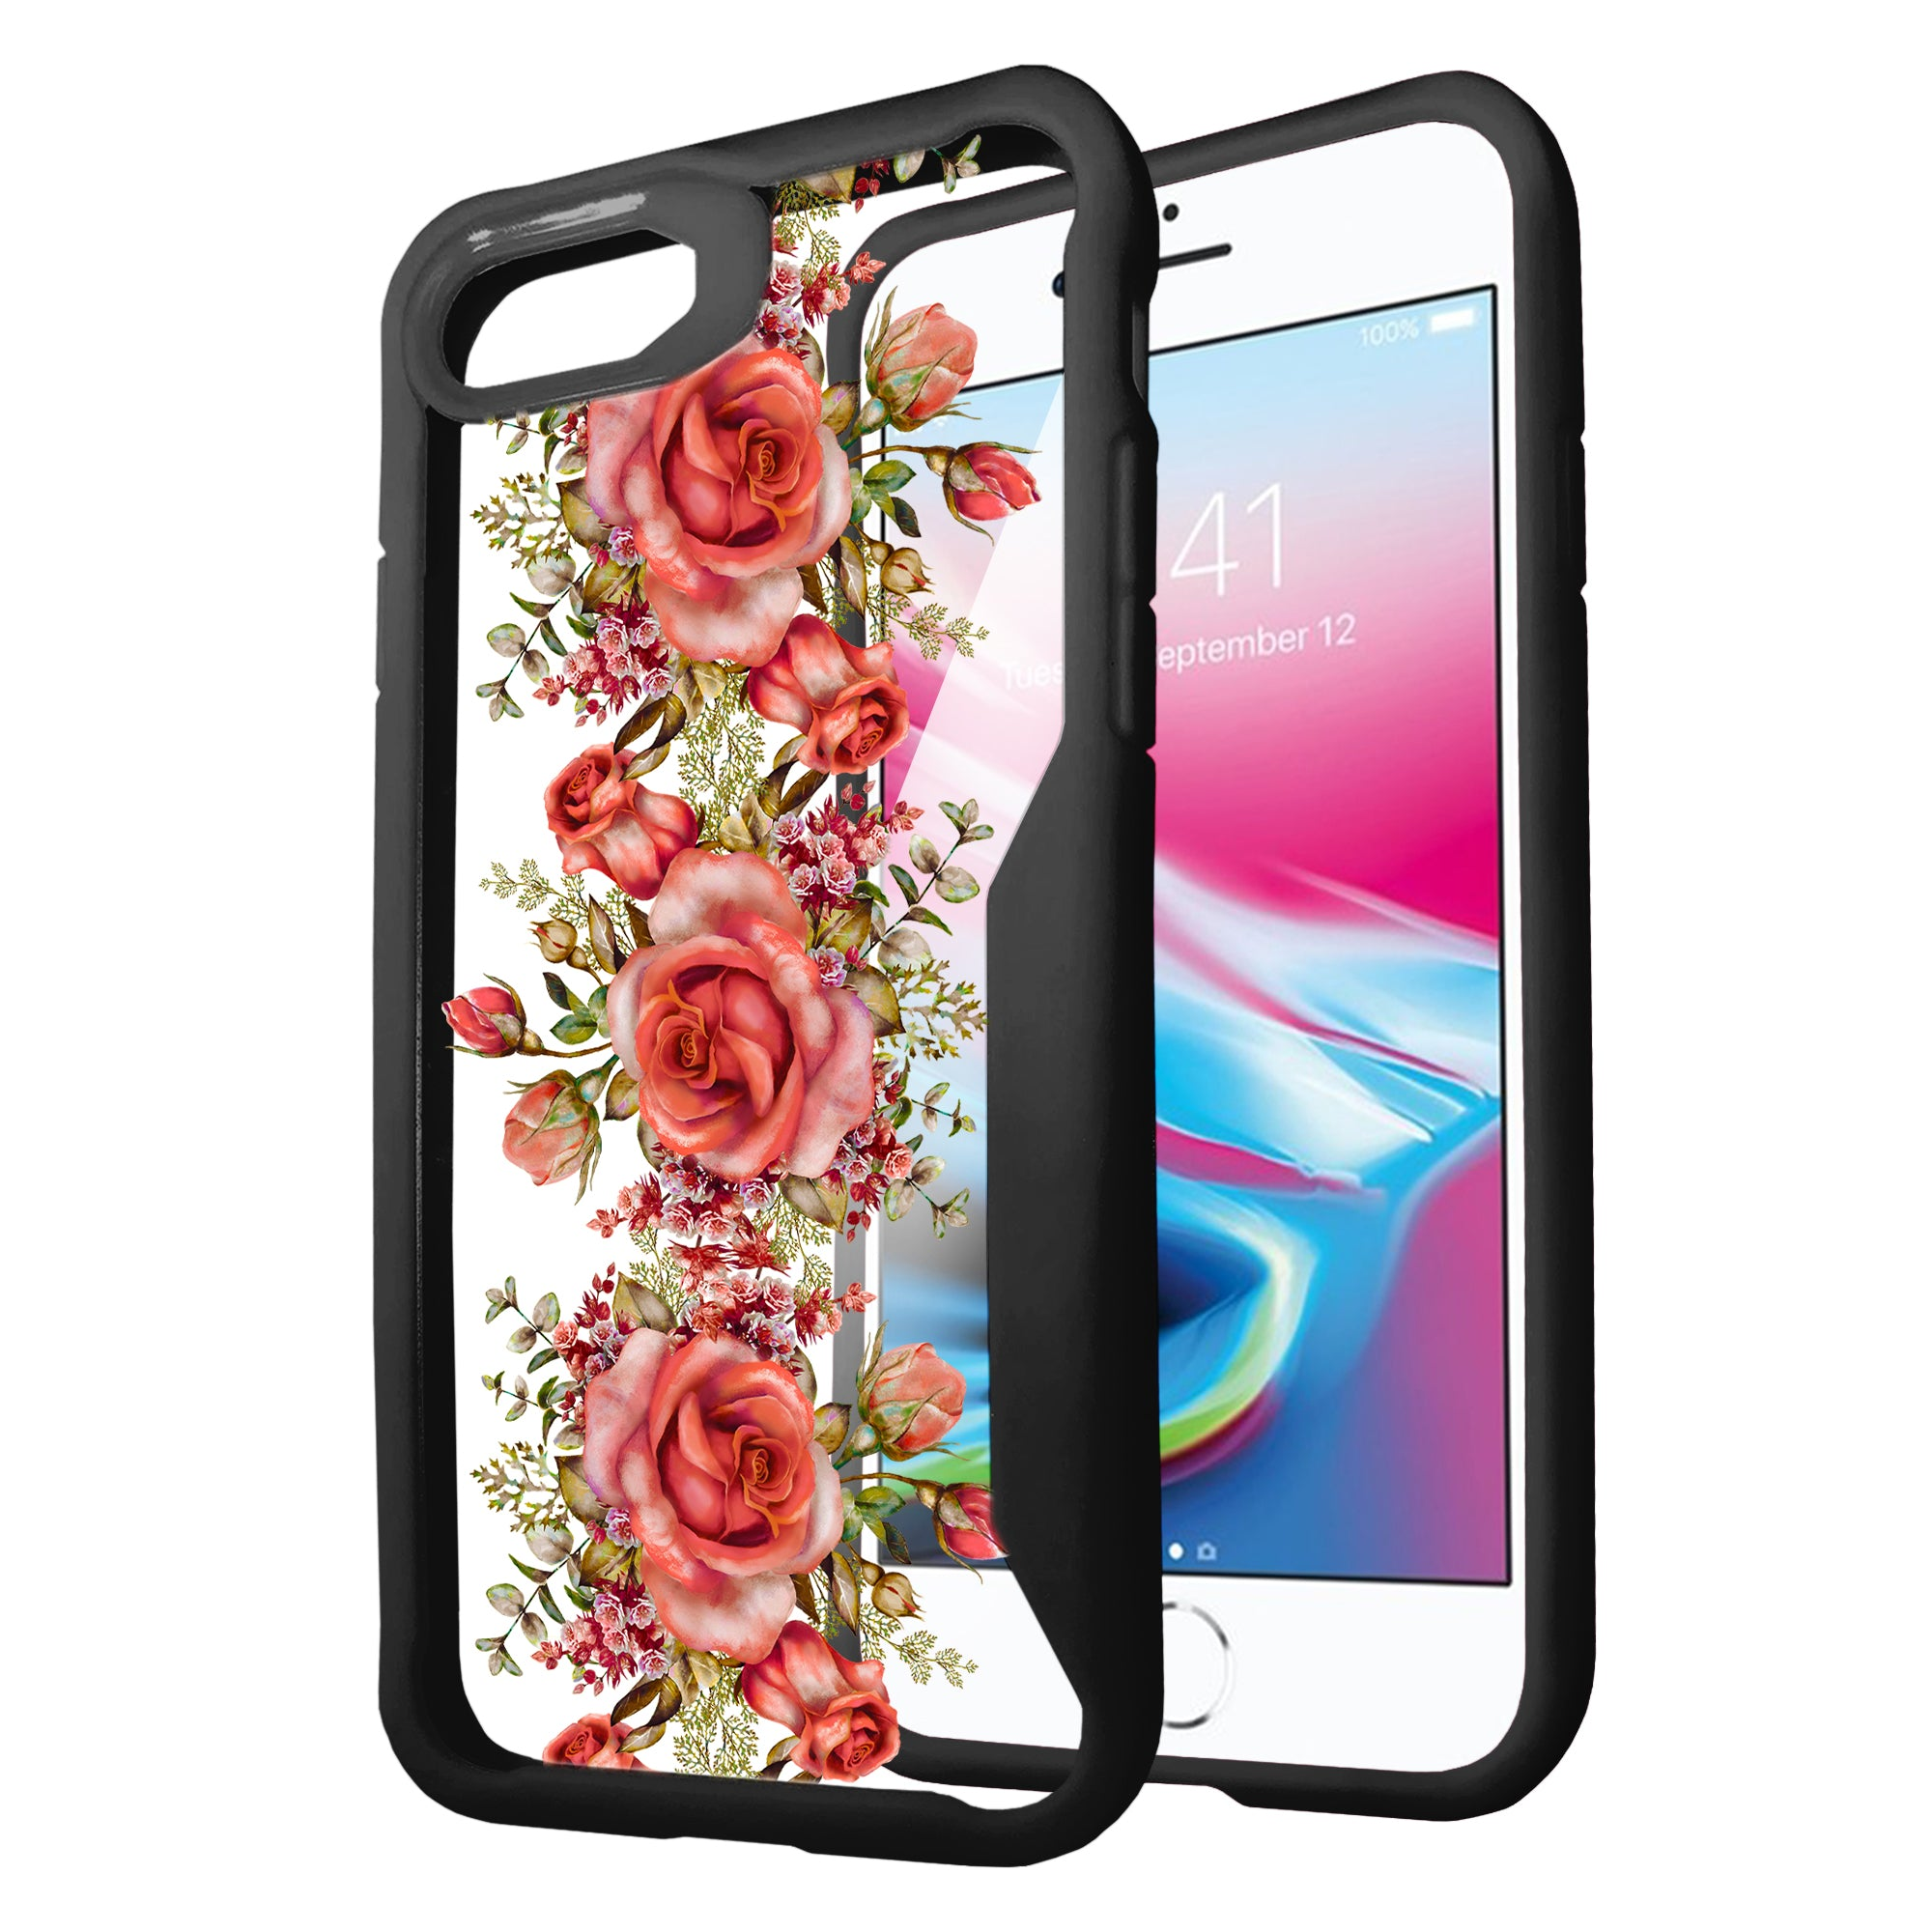 For-Apple-iPhone-7-iPhone-8-Clear-Case-w-Black-Silicone-Edges-Floral-Design thumbnail 13